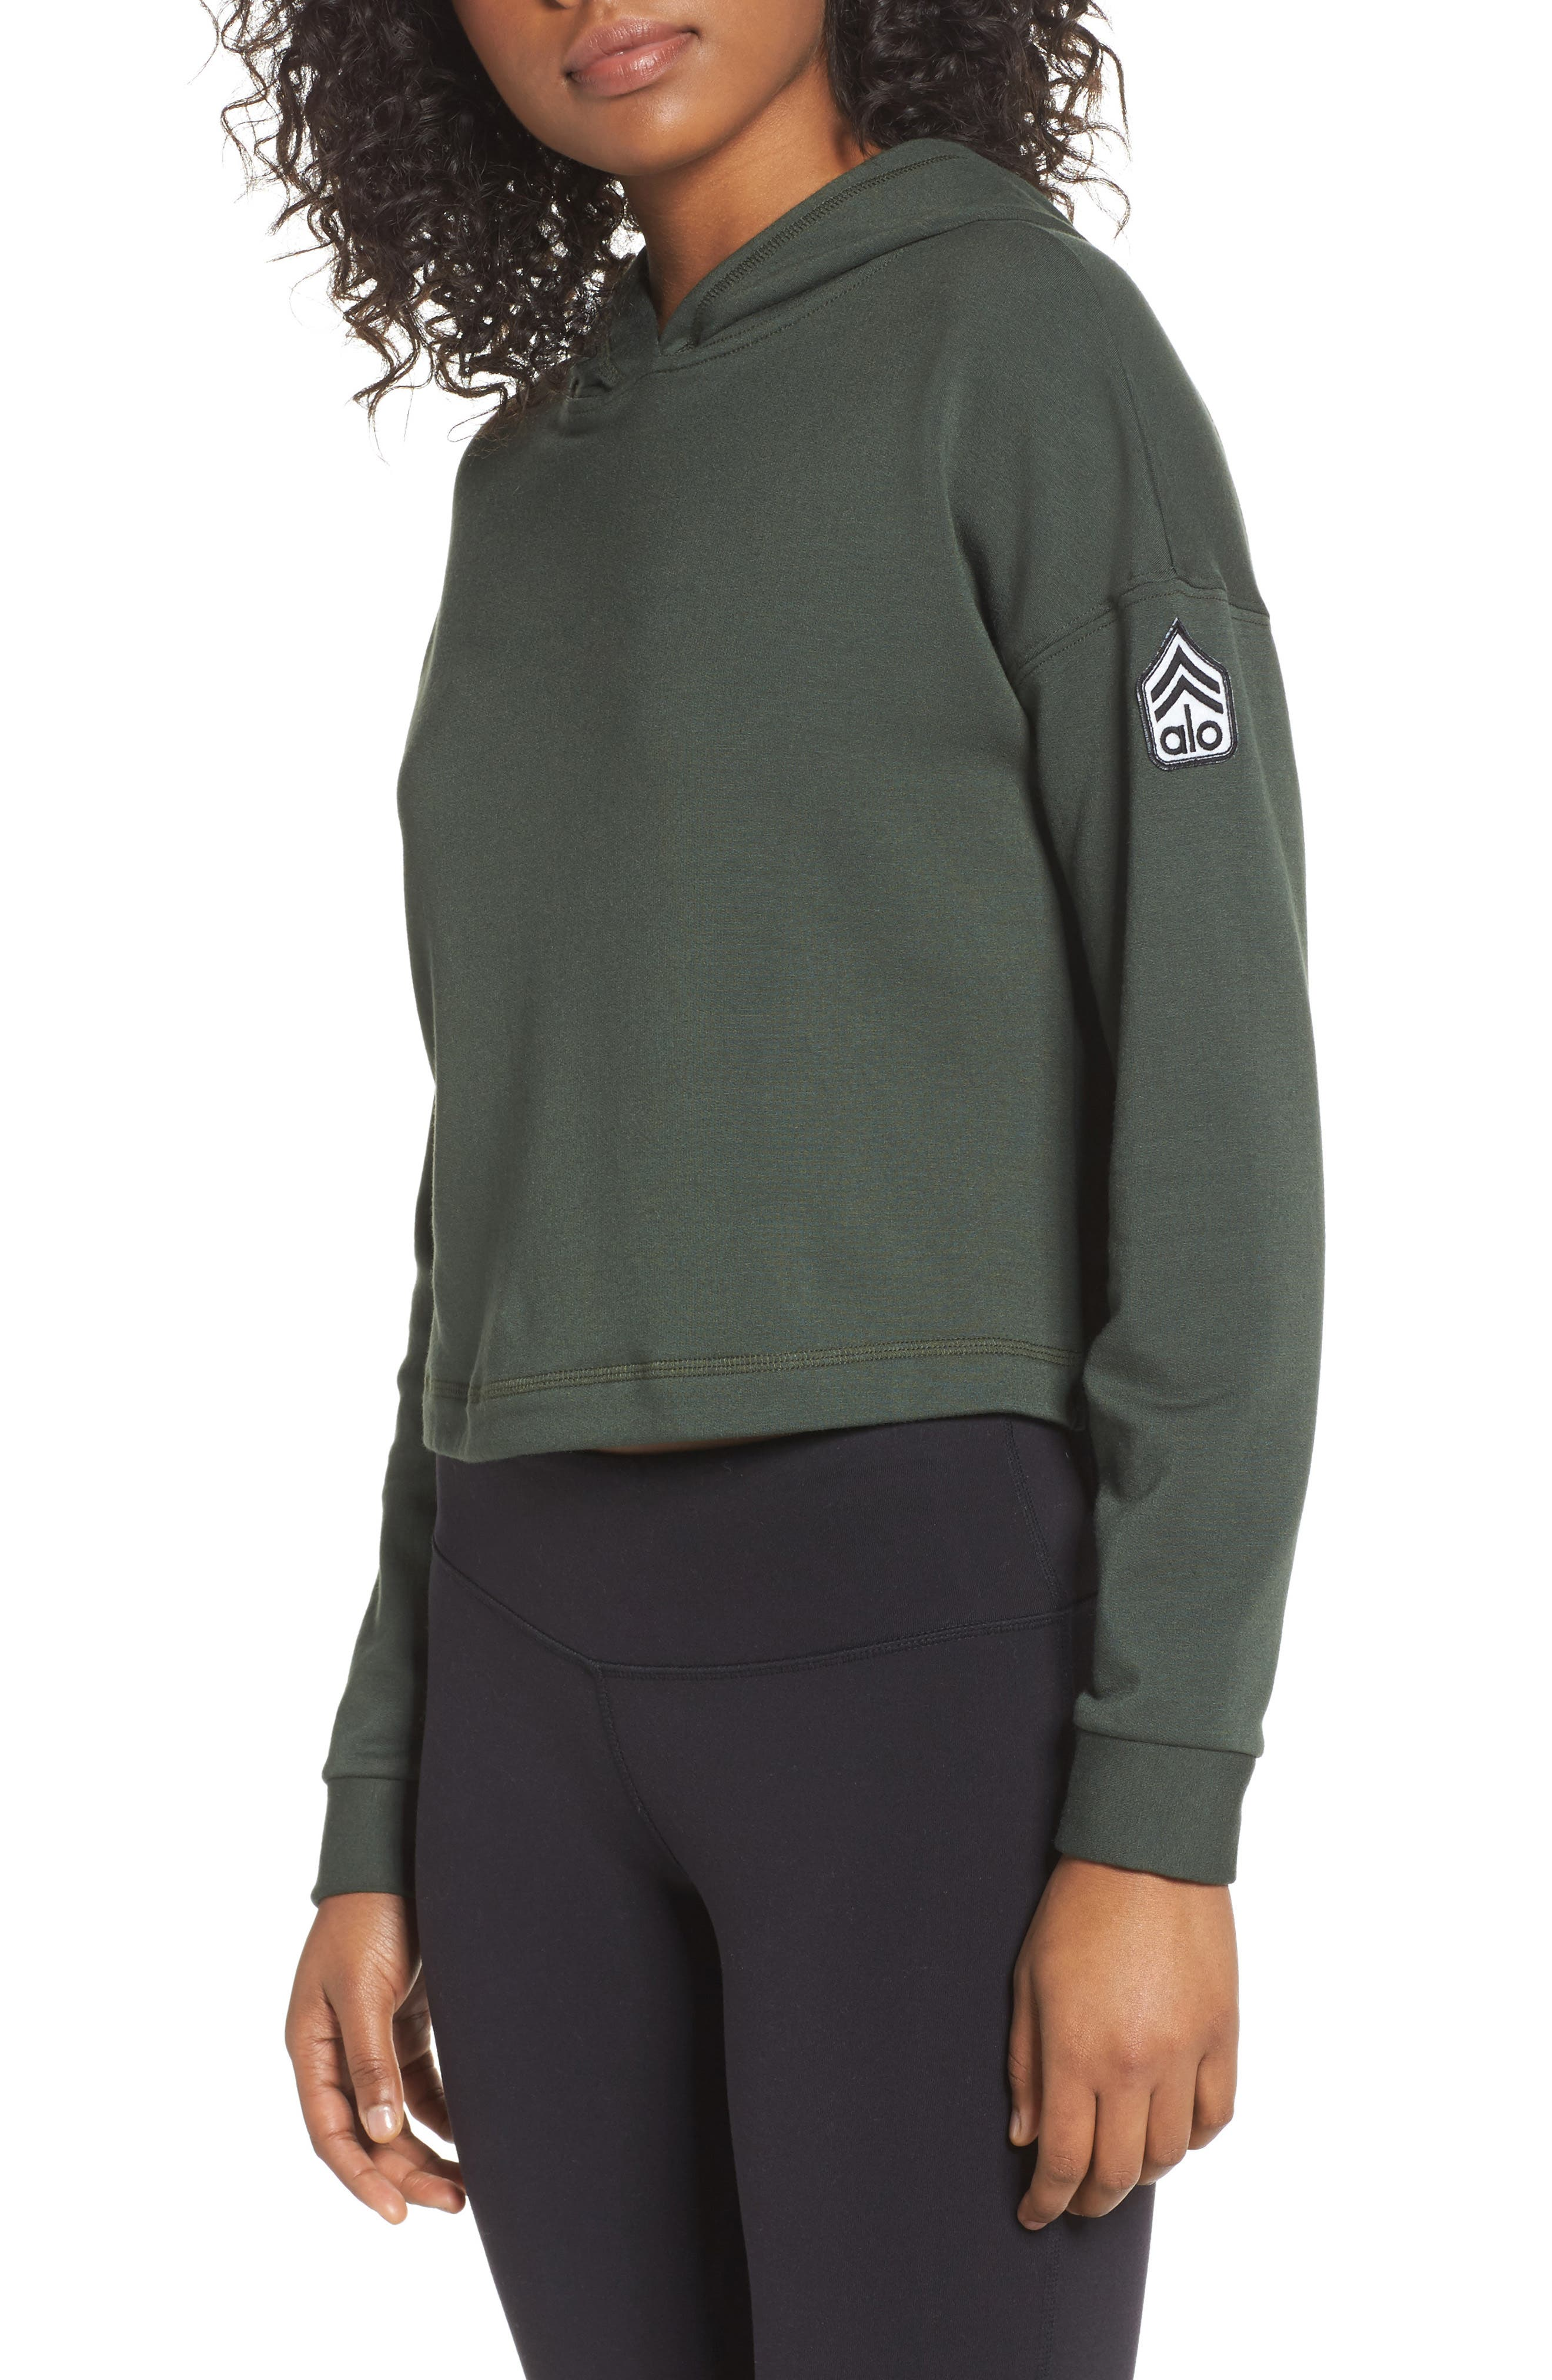 Screenprint French Terry Crop Hoodie,                         Main,                         color, Hunter / Alo Patch